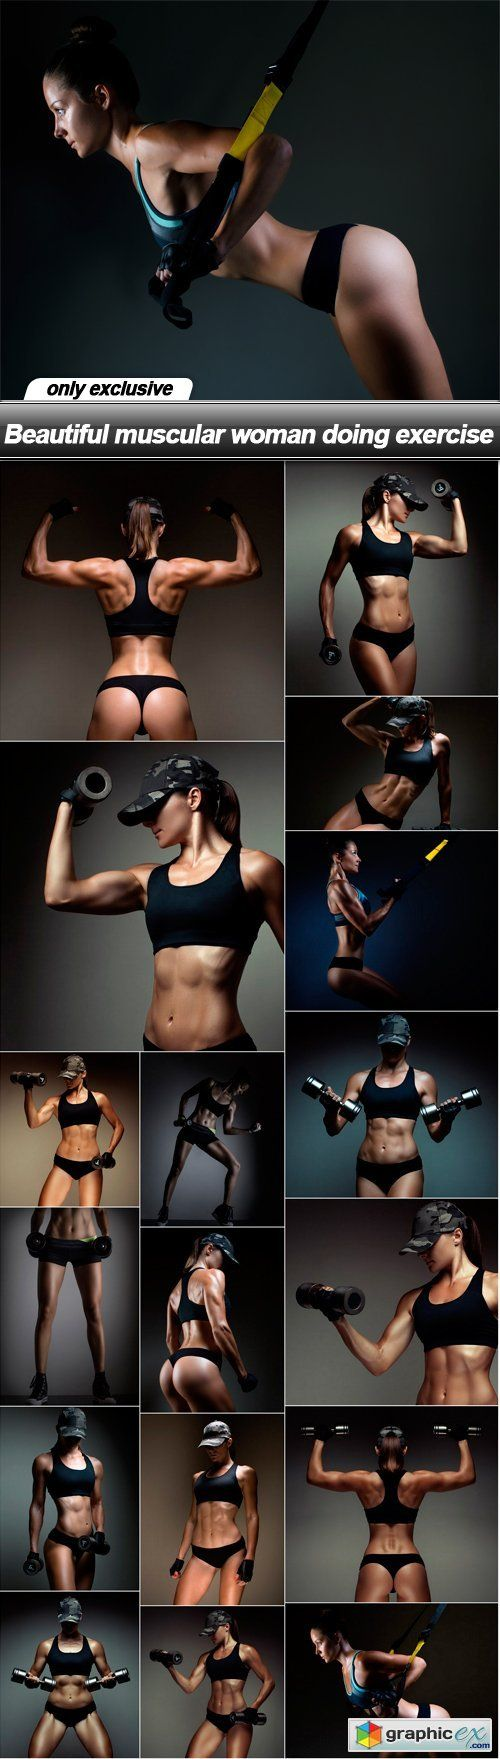 Beautiful muscular woman doing exercise  18 UHQ JPEG  stock images